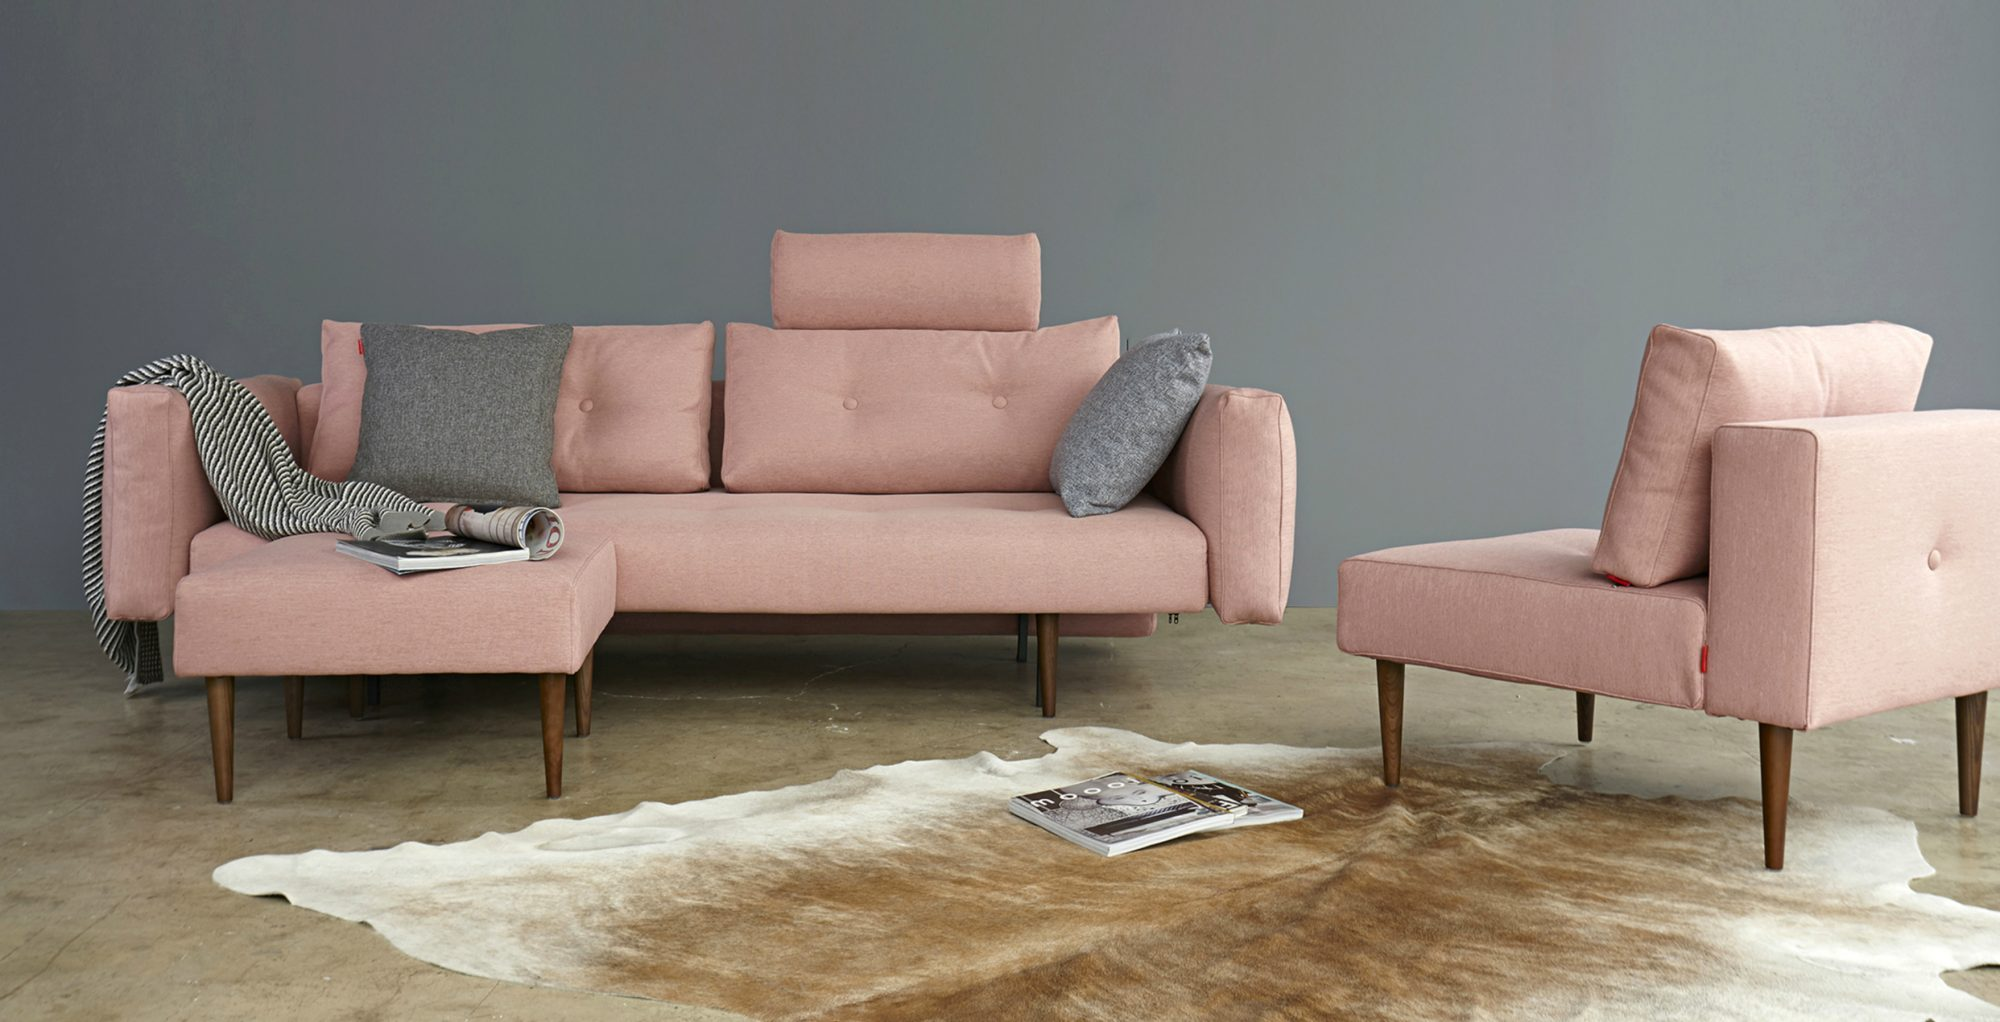 Recast-plus-sofa-bed-arms-head-rest-557-soft-Coral-1-long